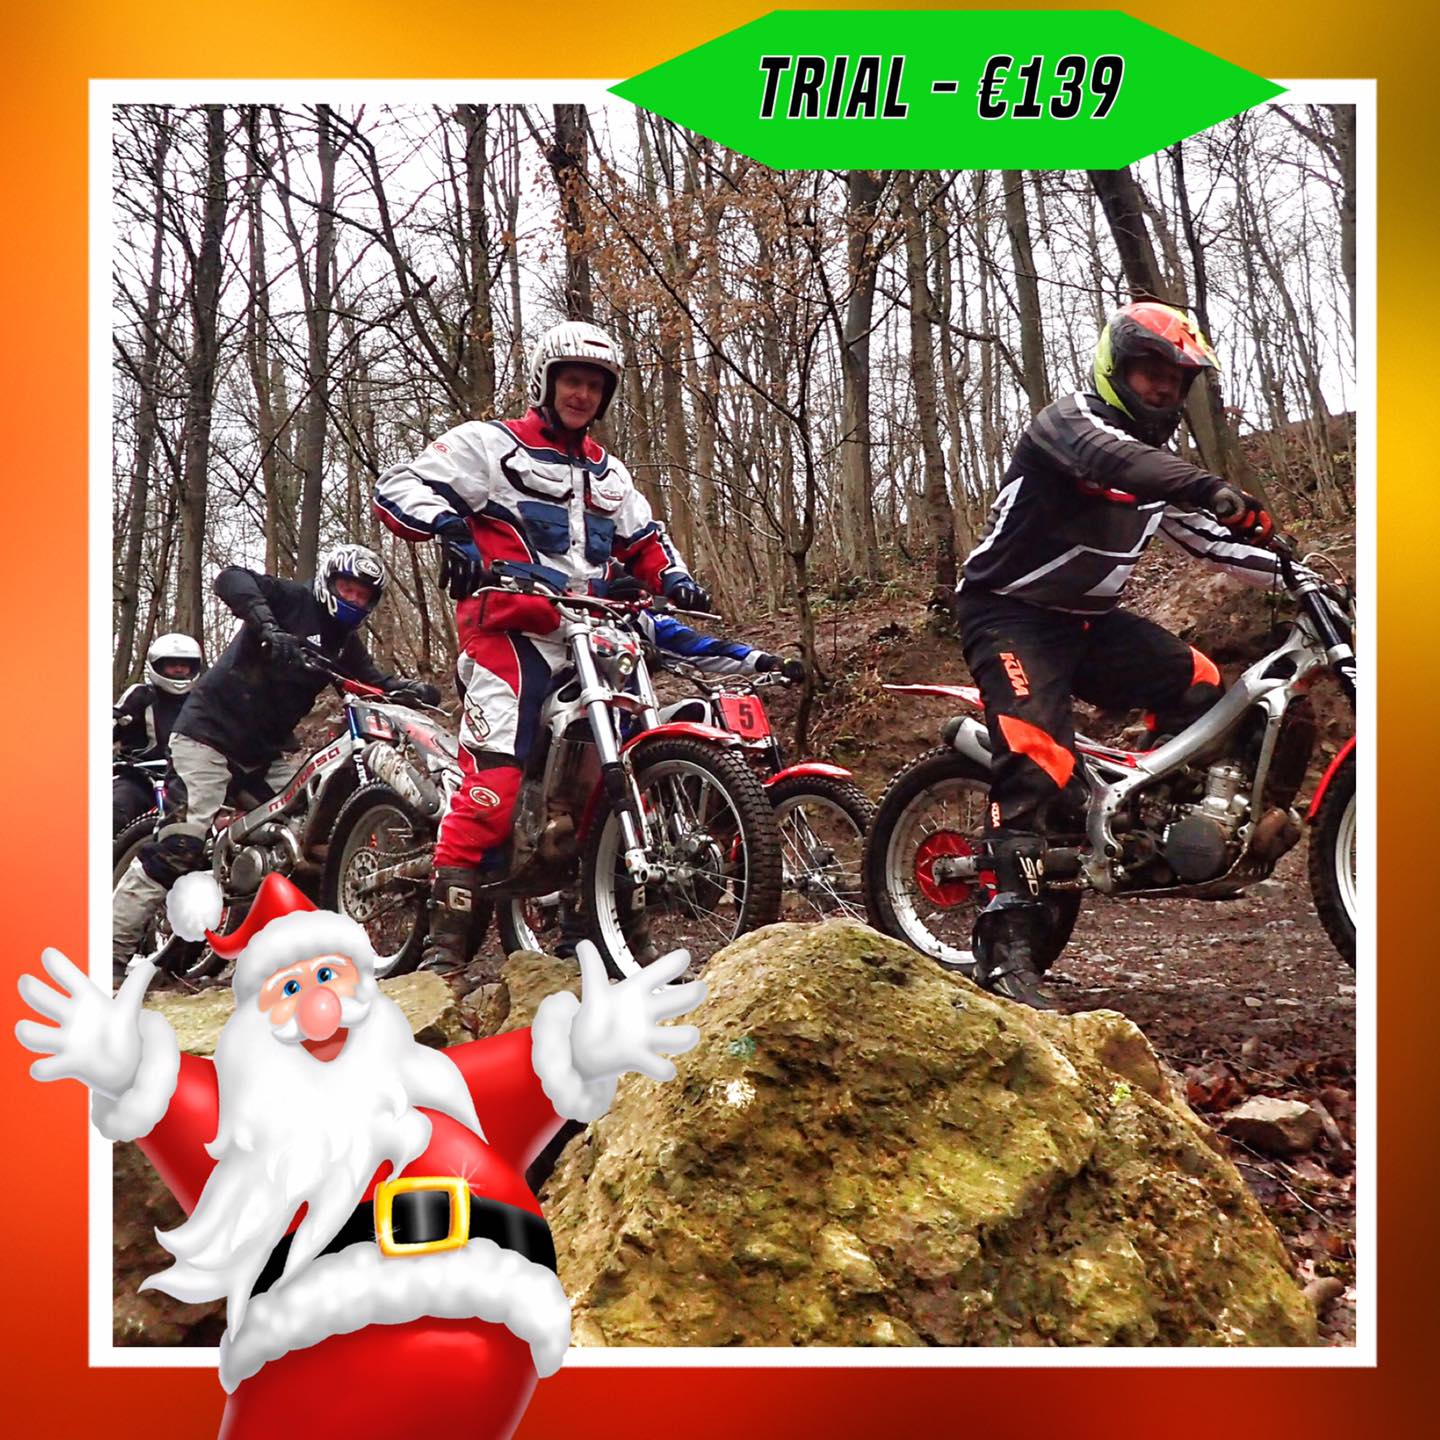 Kerst-initiaties Bilstain Endurofun 28